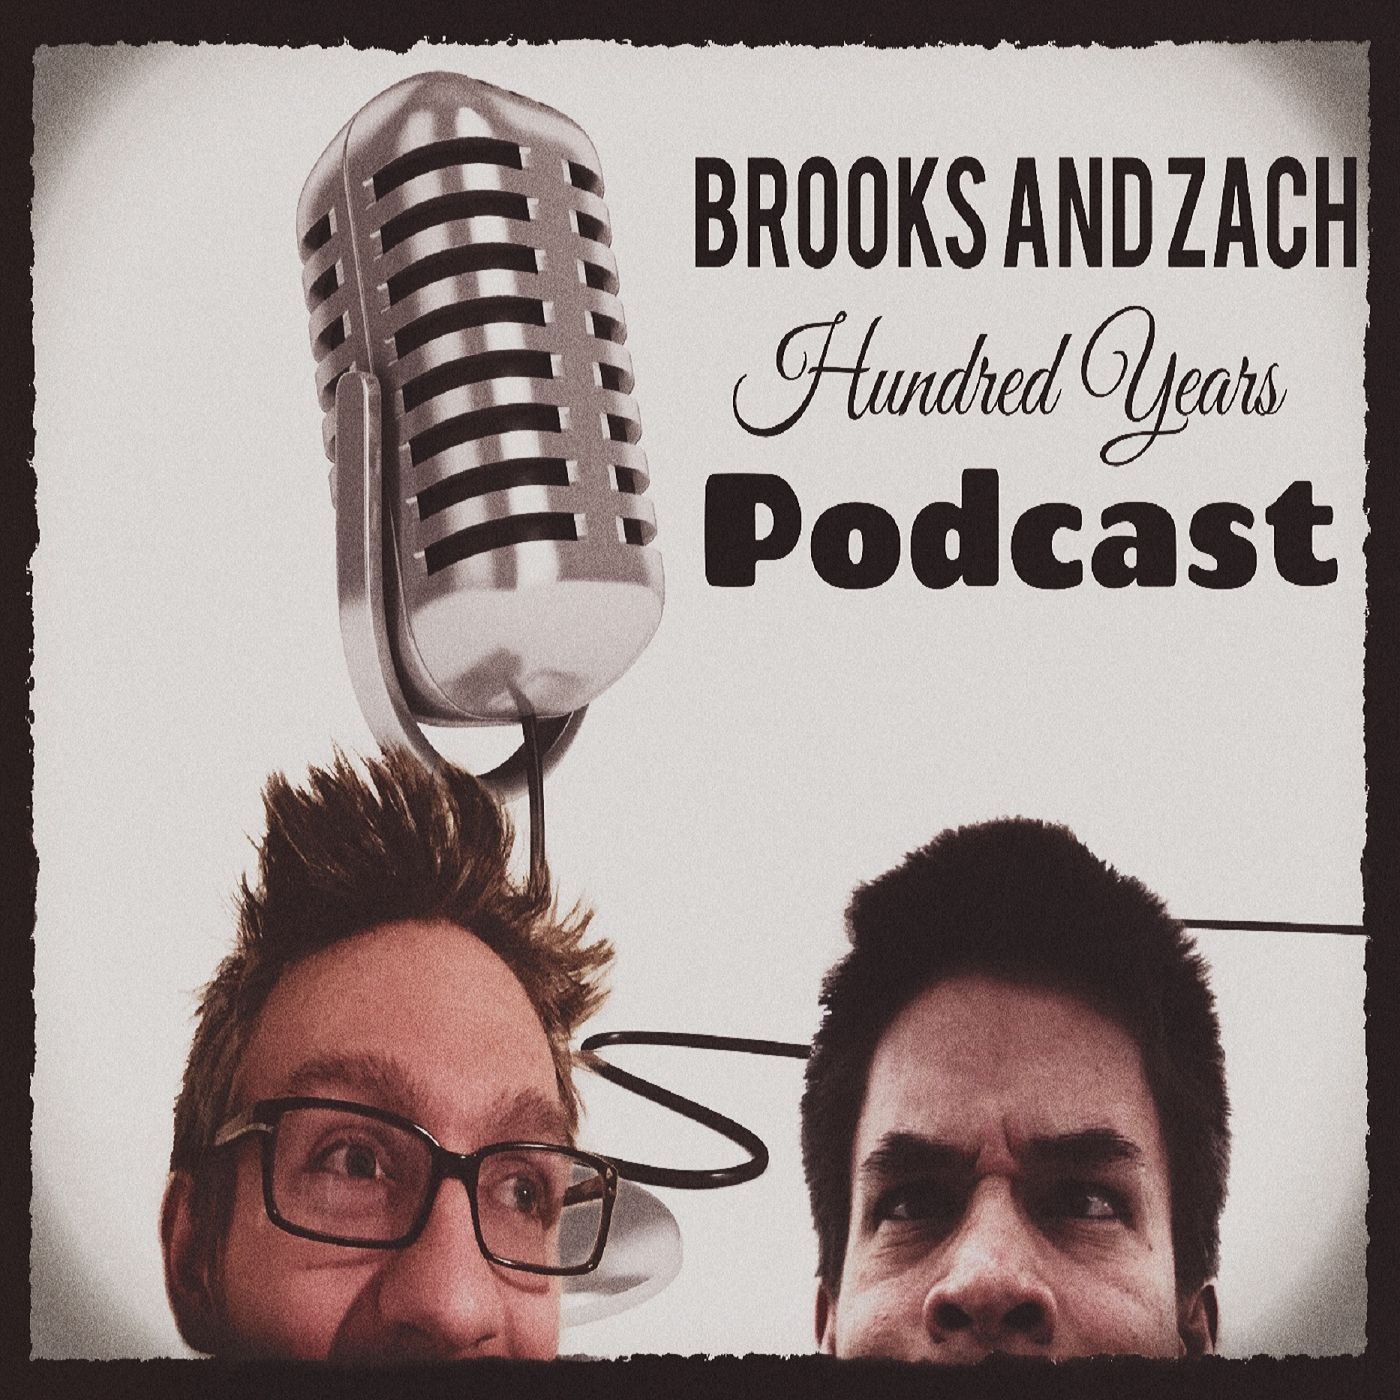 Brooks and Zach Hundred Years Podcast